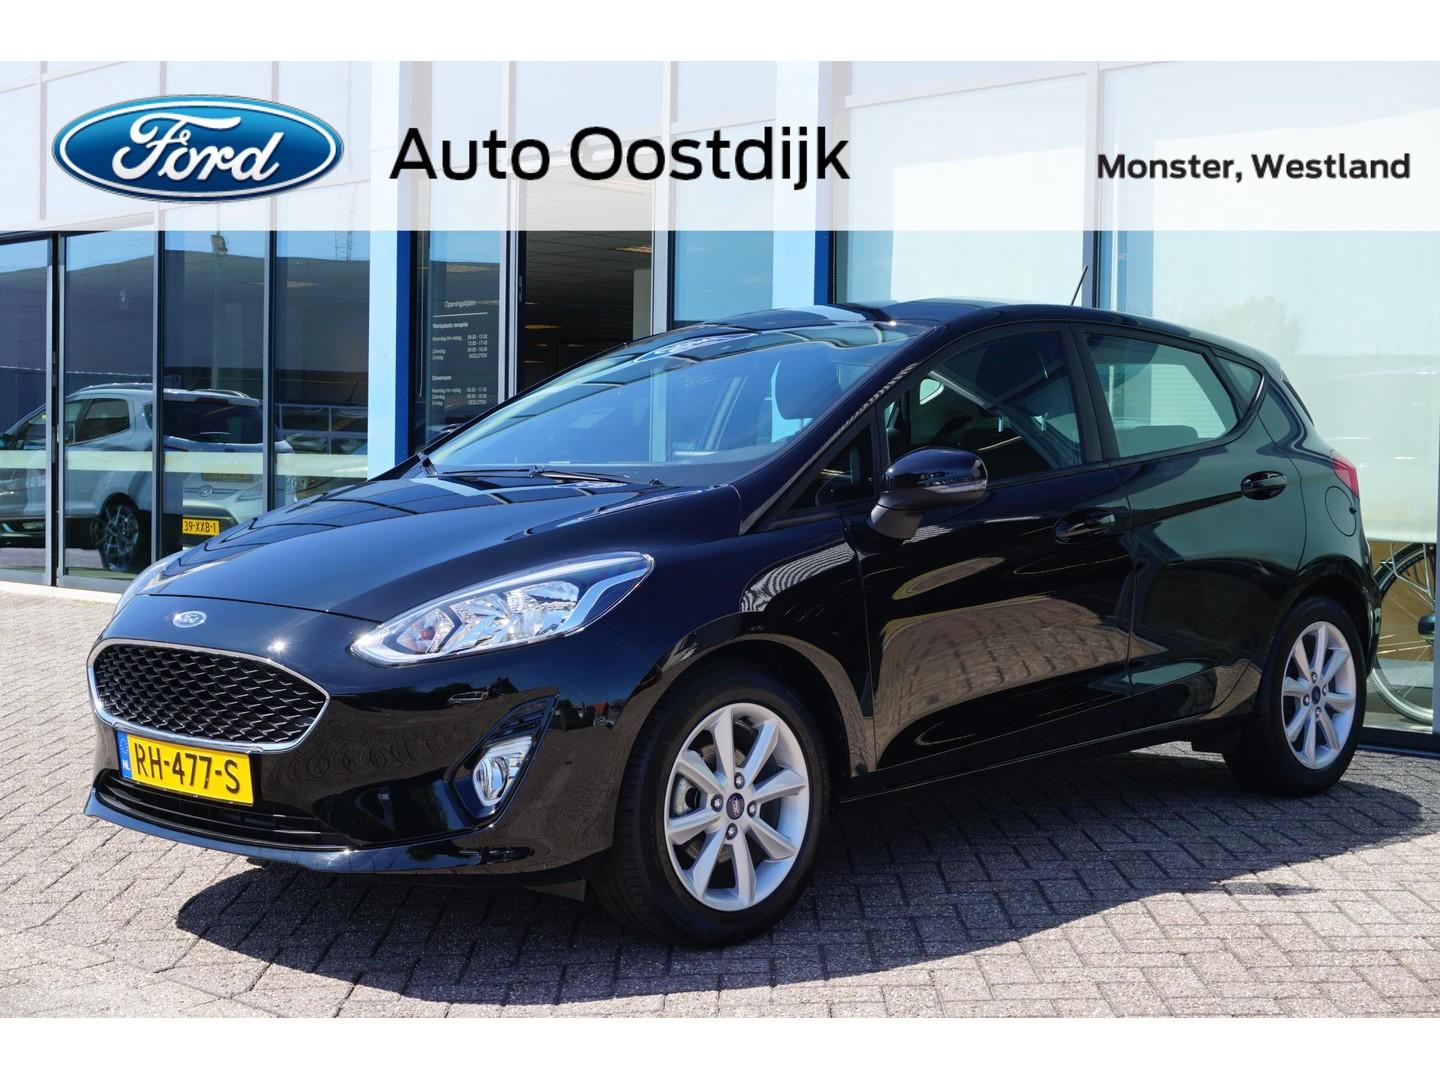 Ford Fiesta 1.1 trend 85pk navi airco dab+ parkeersensoren *lage km-stand*